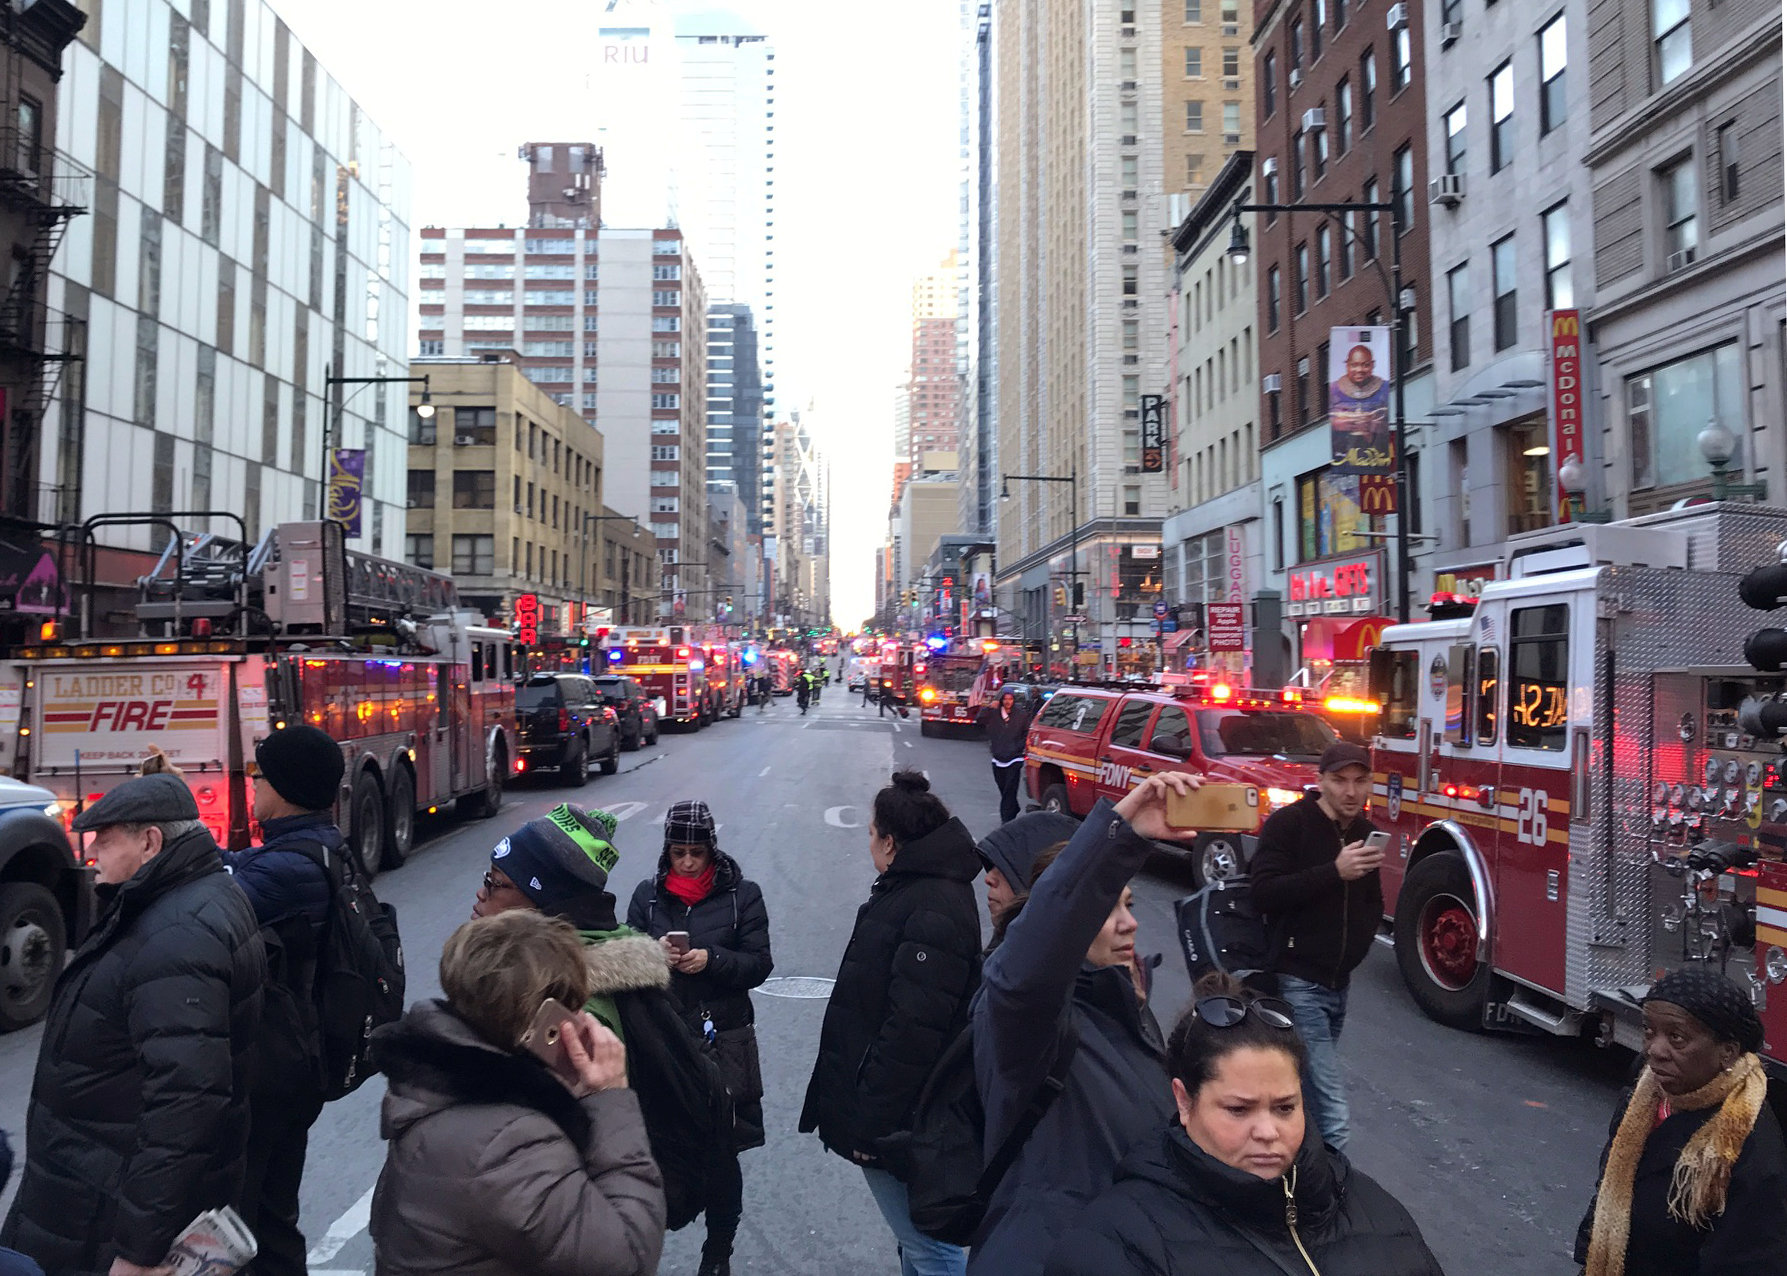 Police arrest one as bomb explodes at New York's Port Authority